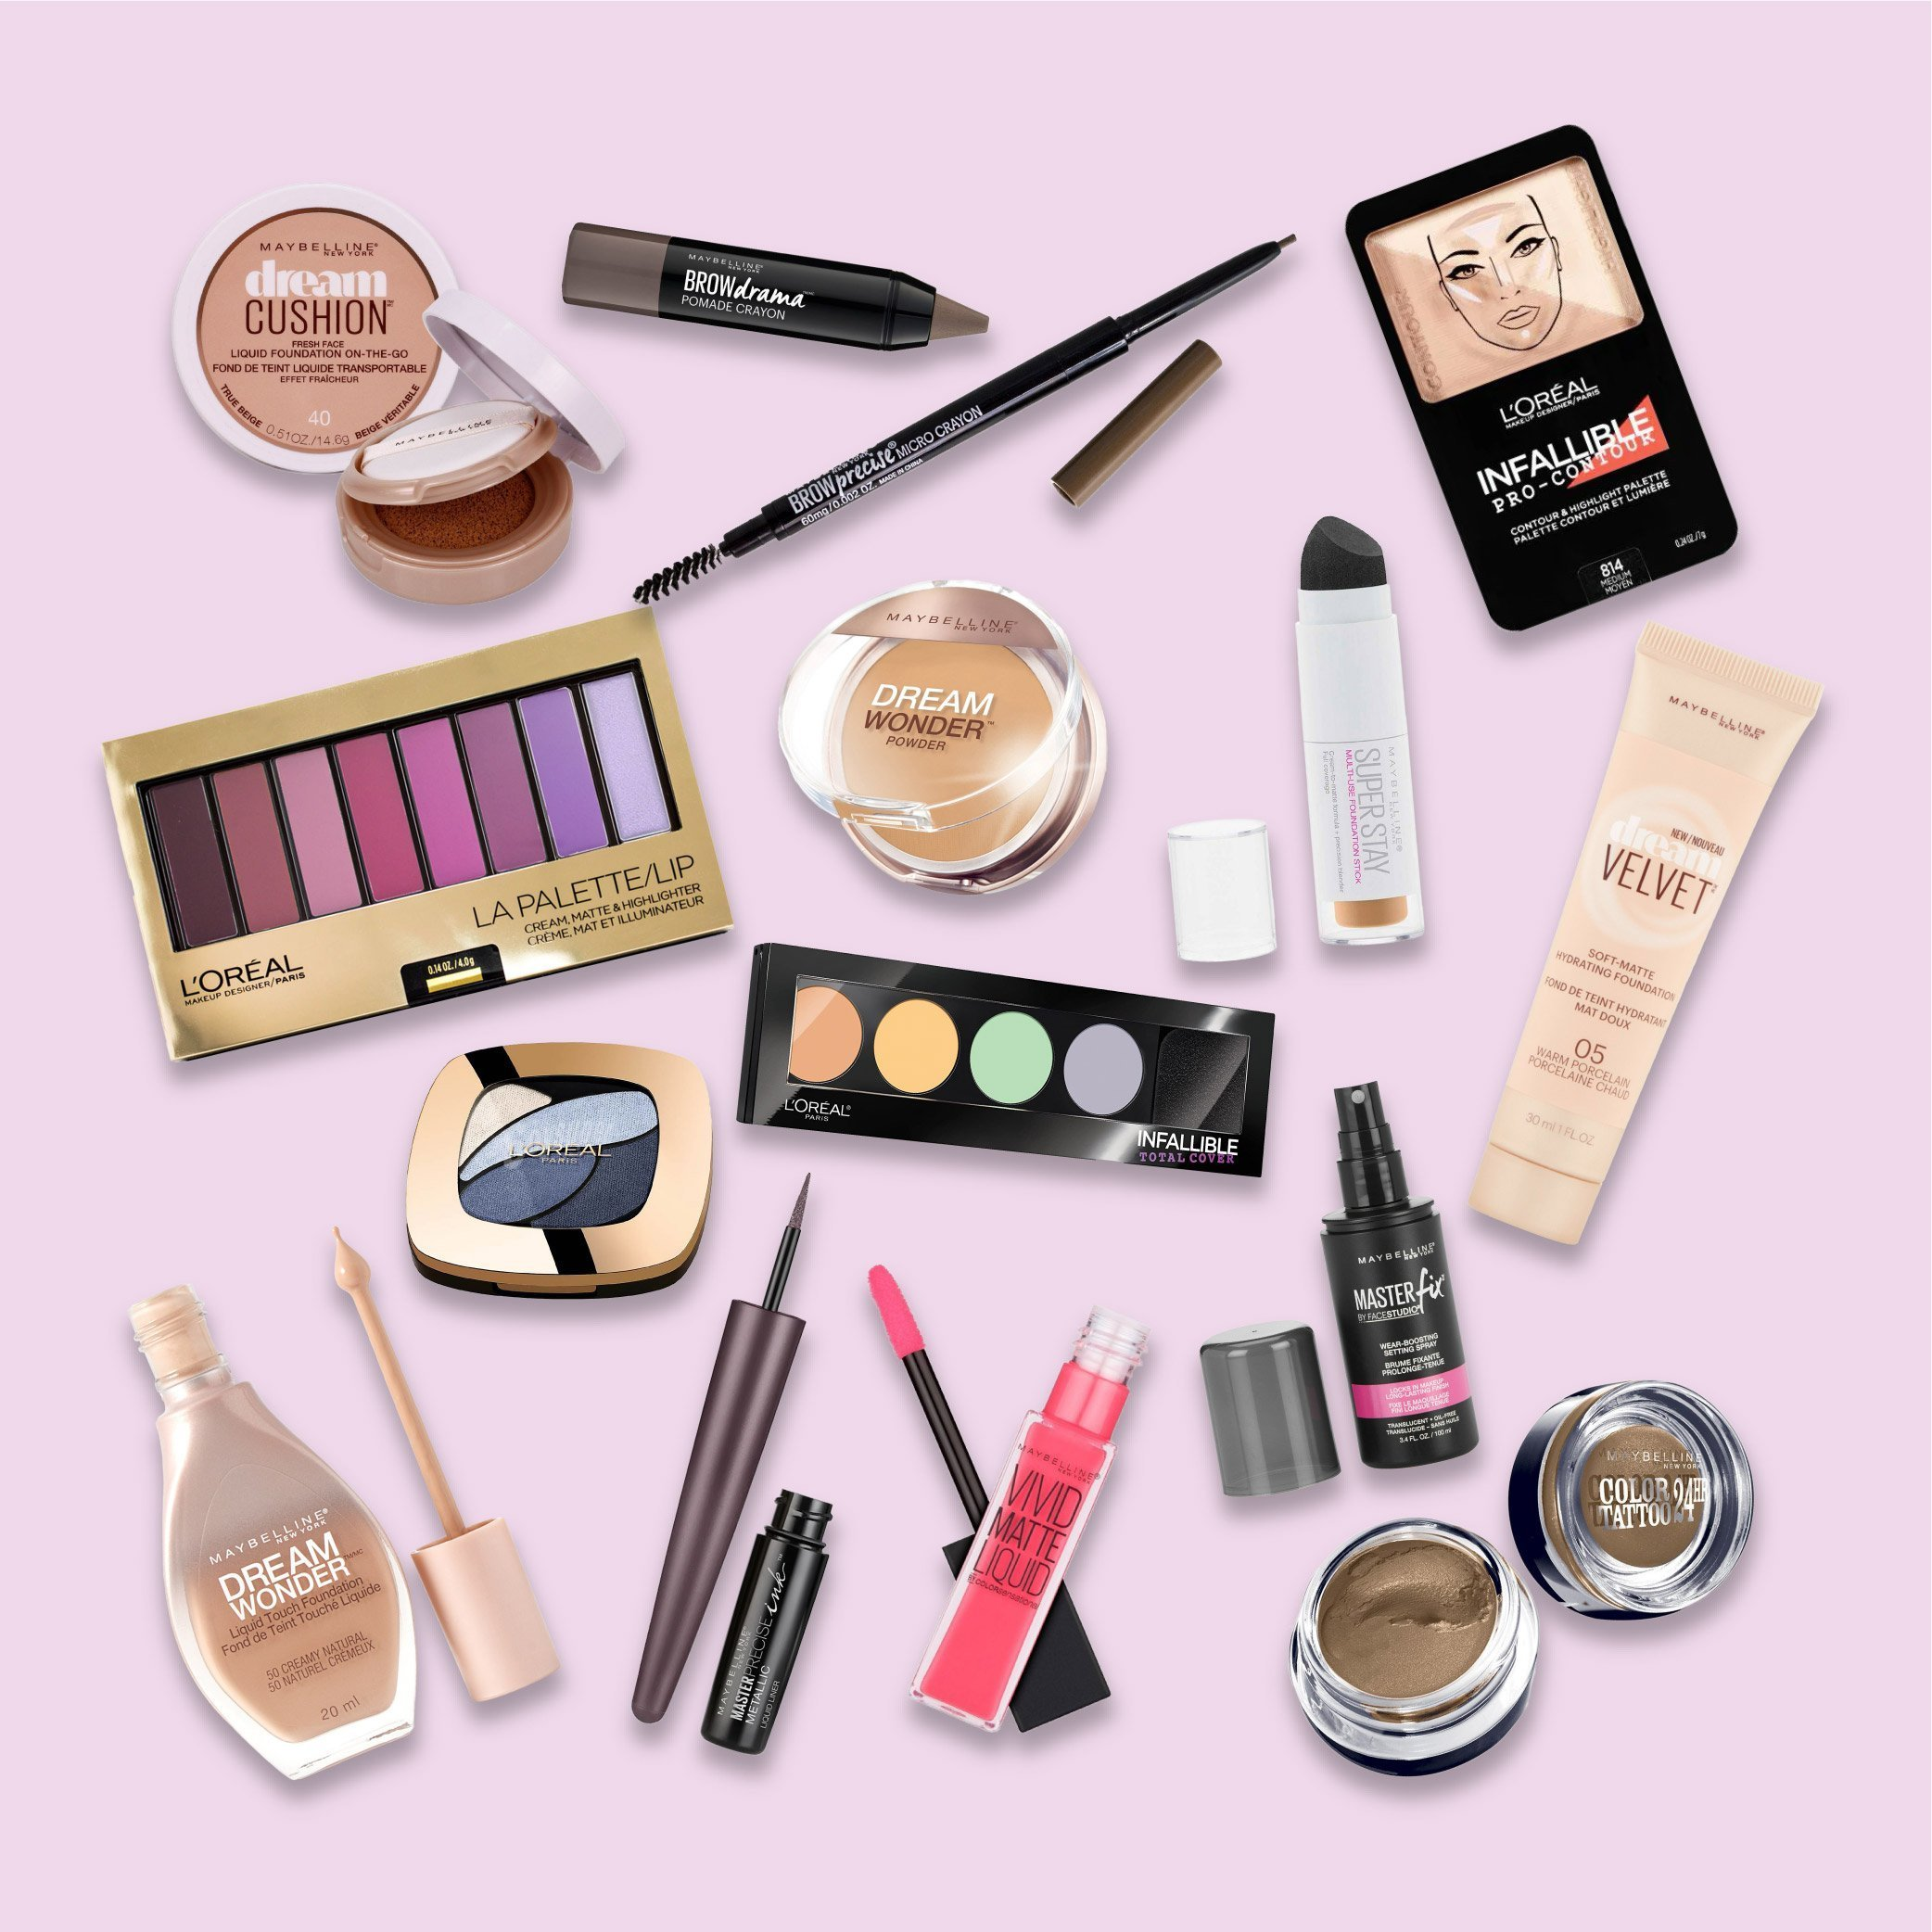 A collection of foundations, pomade crayons, contours, and eyeshadow palettes products from Maybelline and L'Oréal on a pink background